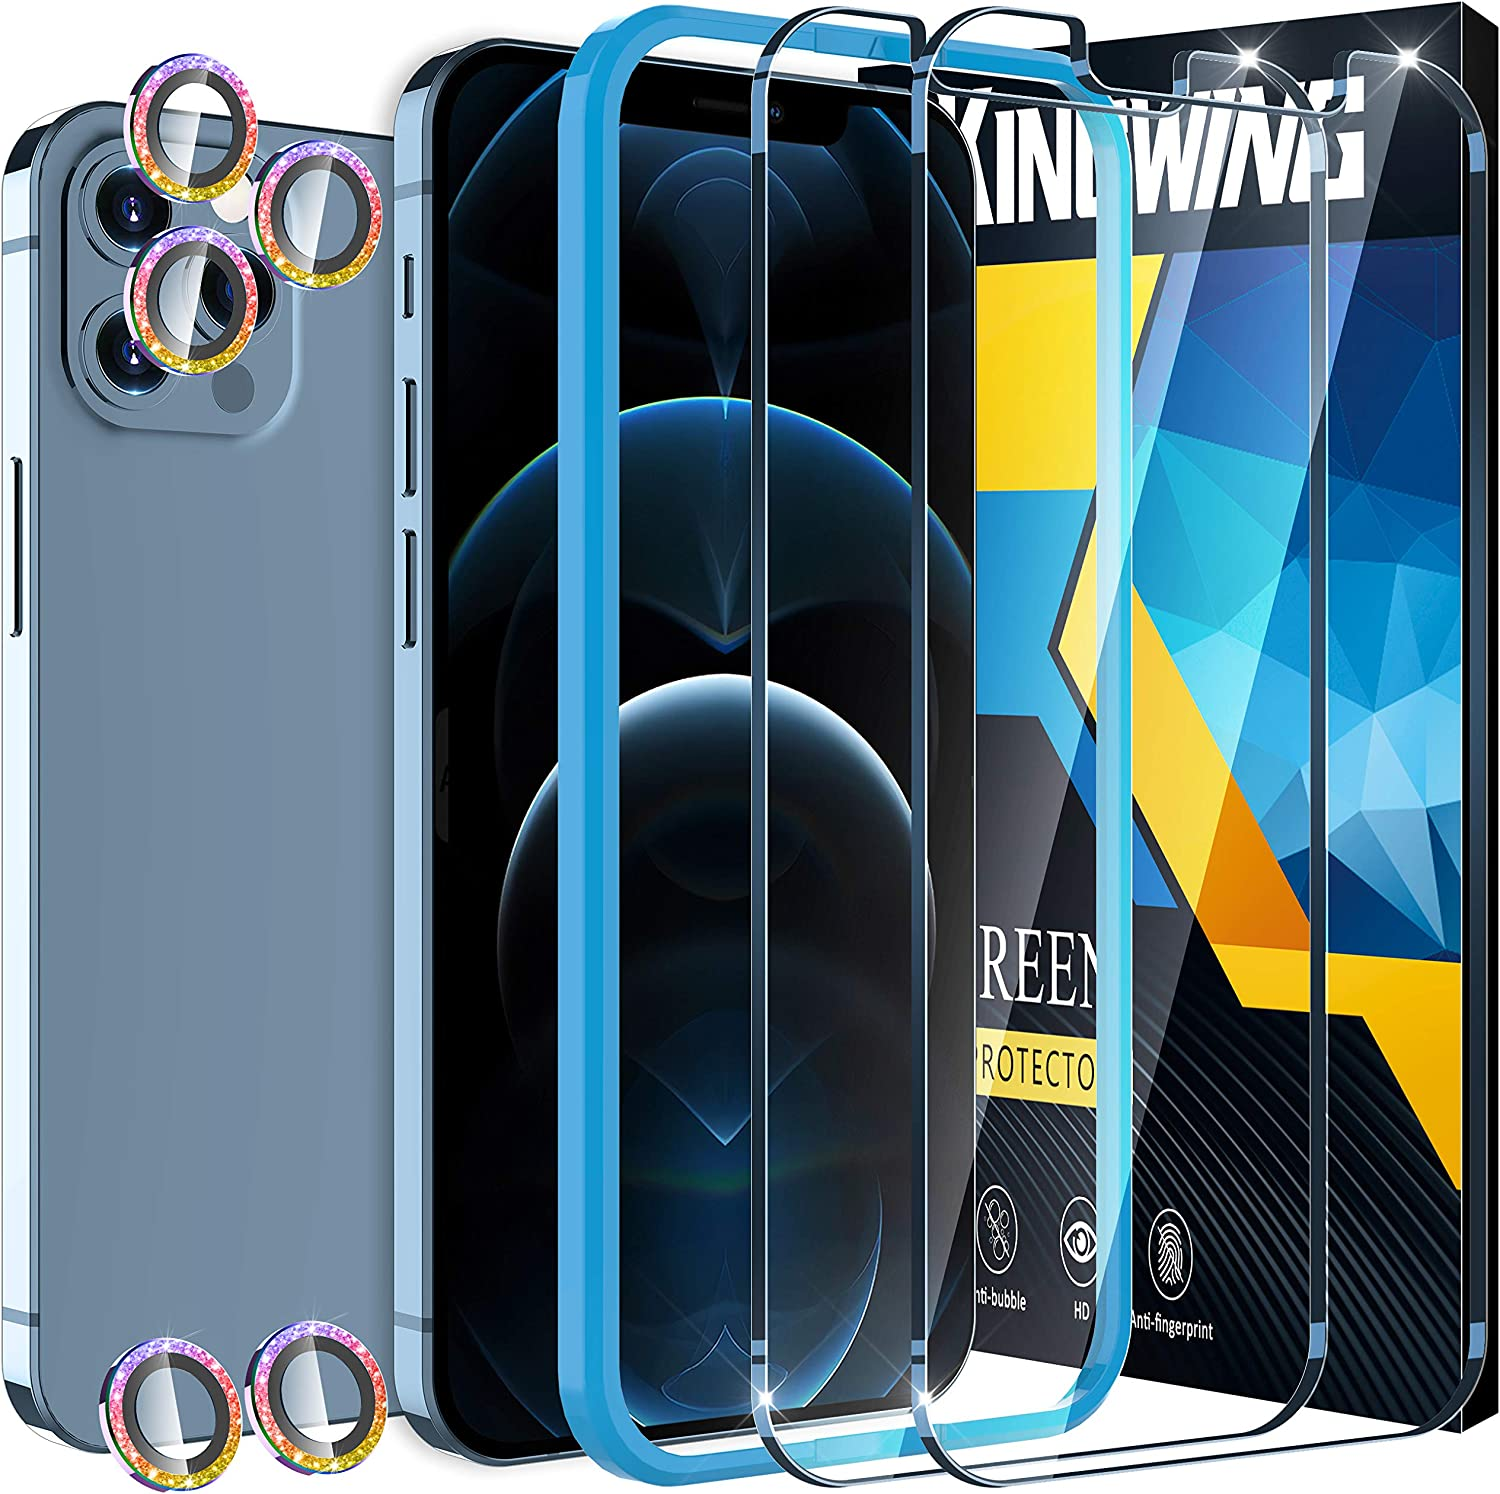 [2+5 Pack ] KINGWING Screen Protector Compatible with iPhone 12 Pro Max 5G (6.7 inch), 2 Pack Tempered Glass + 5 Pack Diamond Rainbow Camera Lens Protector [Installation Frame] [U-Shaped Cutout]